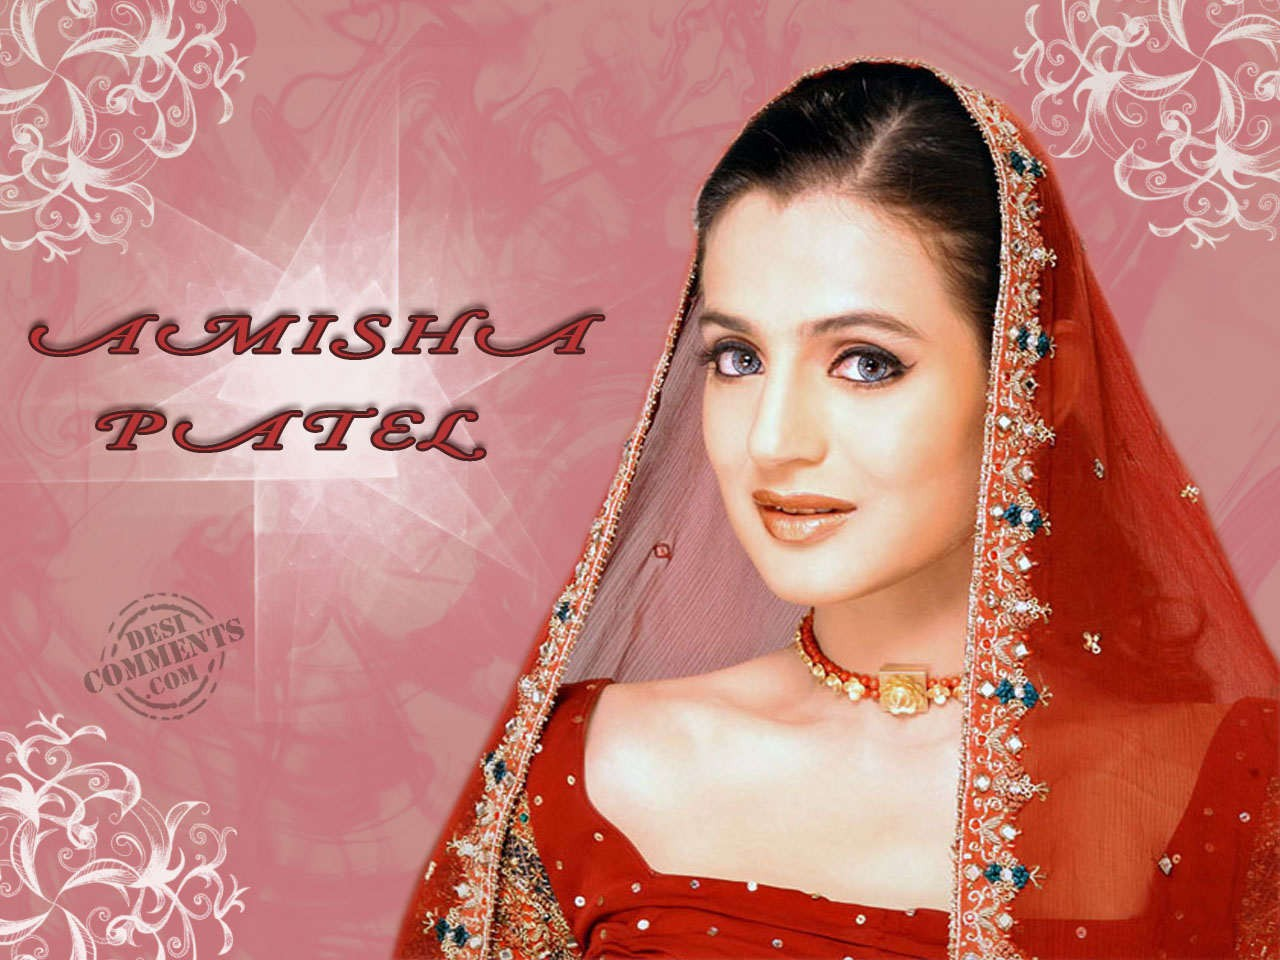 Indian Celebrities (Female) Pictures, Images, Graphics - Page 267